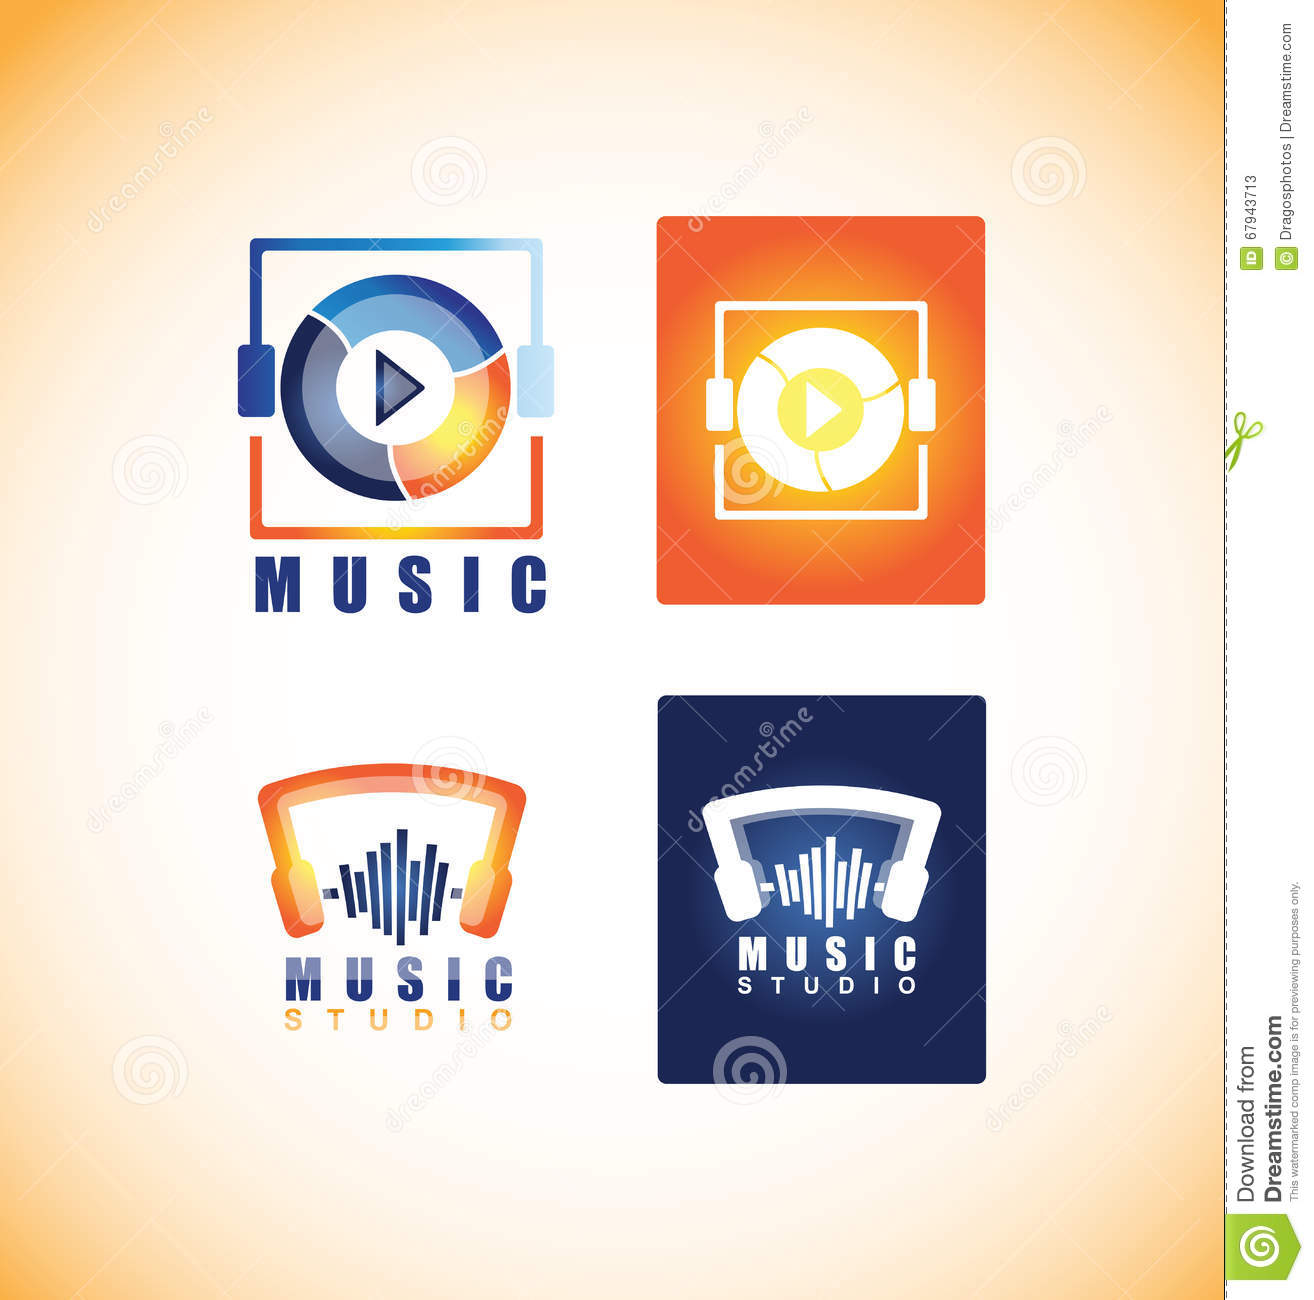 Music Player Studio Logo Icon Stock Vector - Illustration of